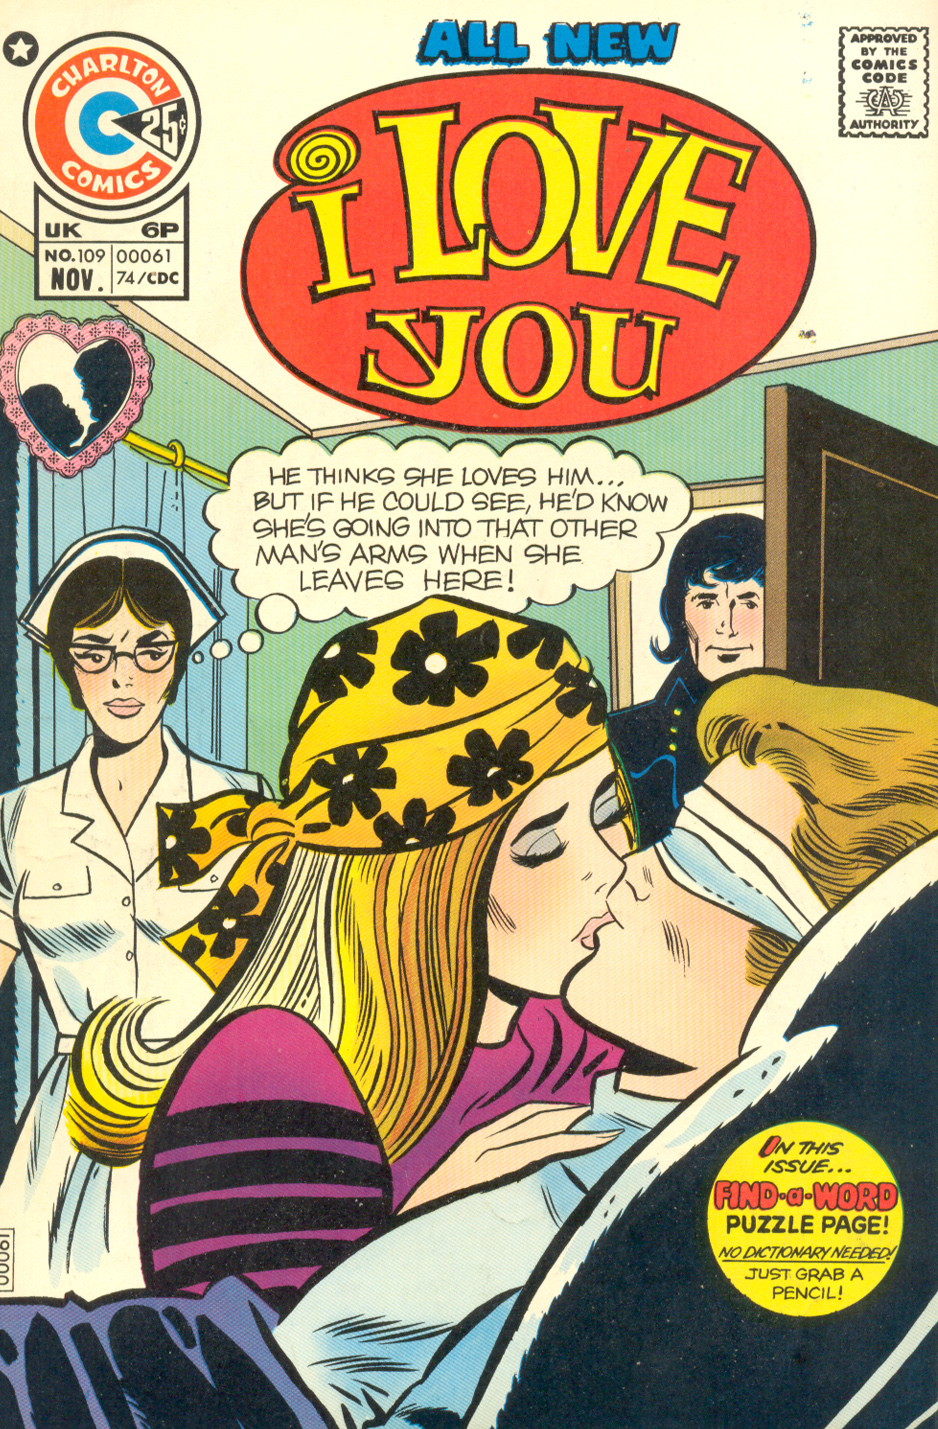 I Love You #109 (November 1974) Pencils and inks: Art Cappello